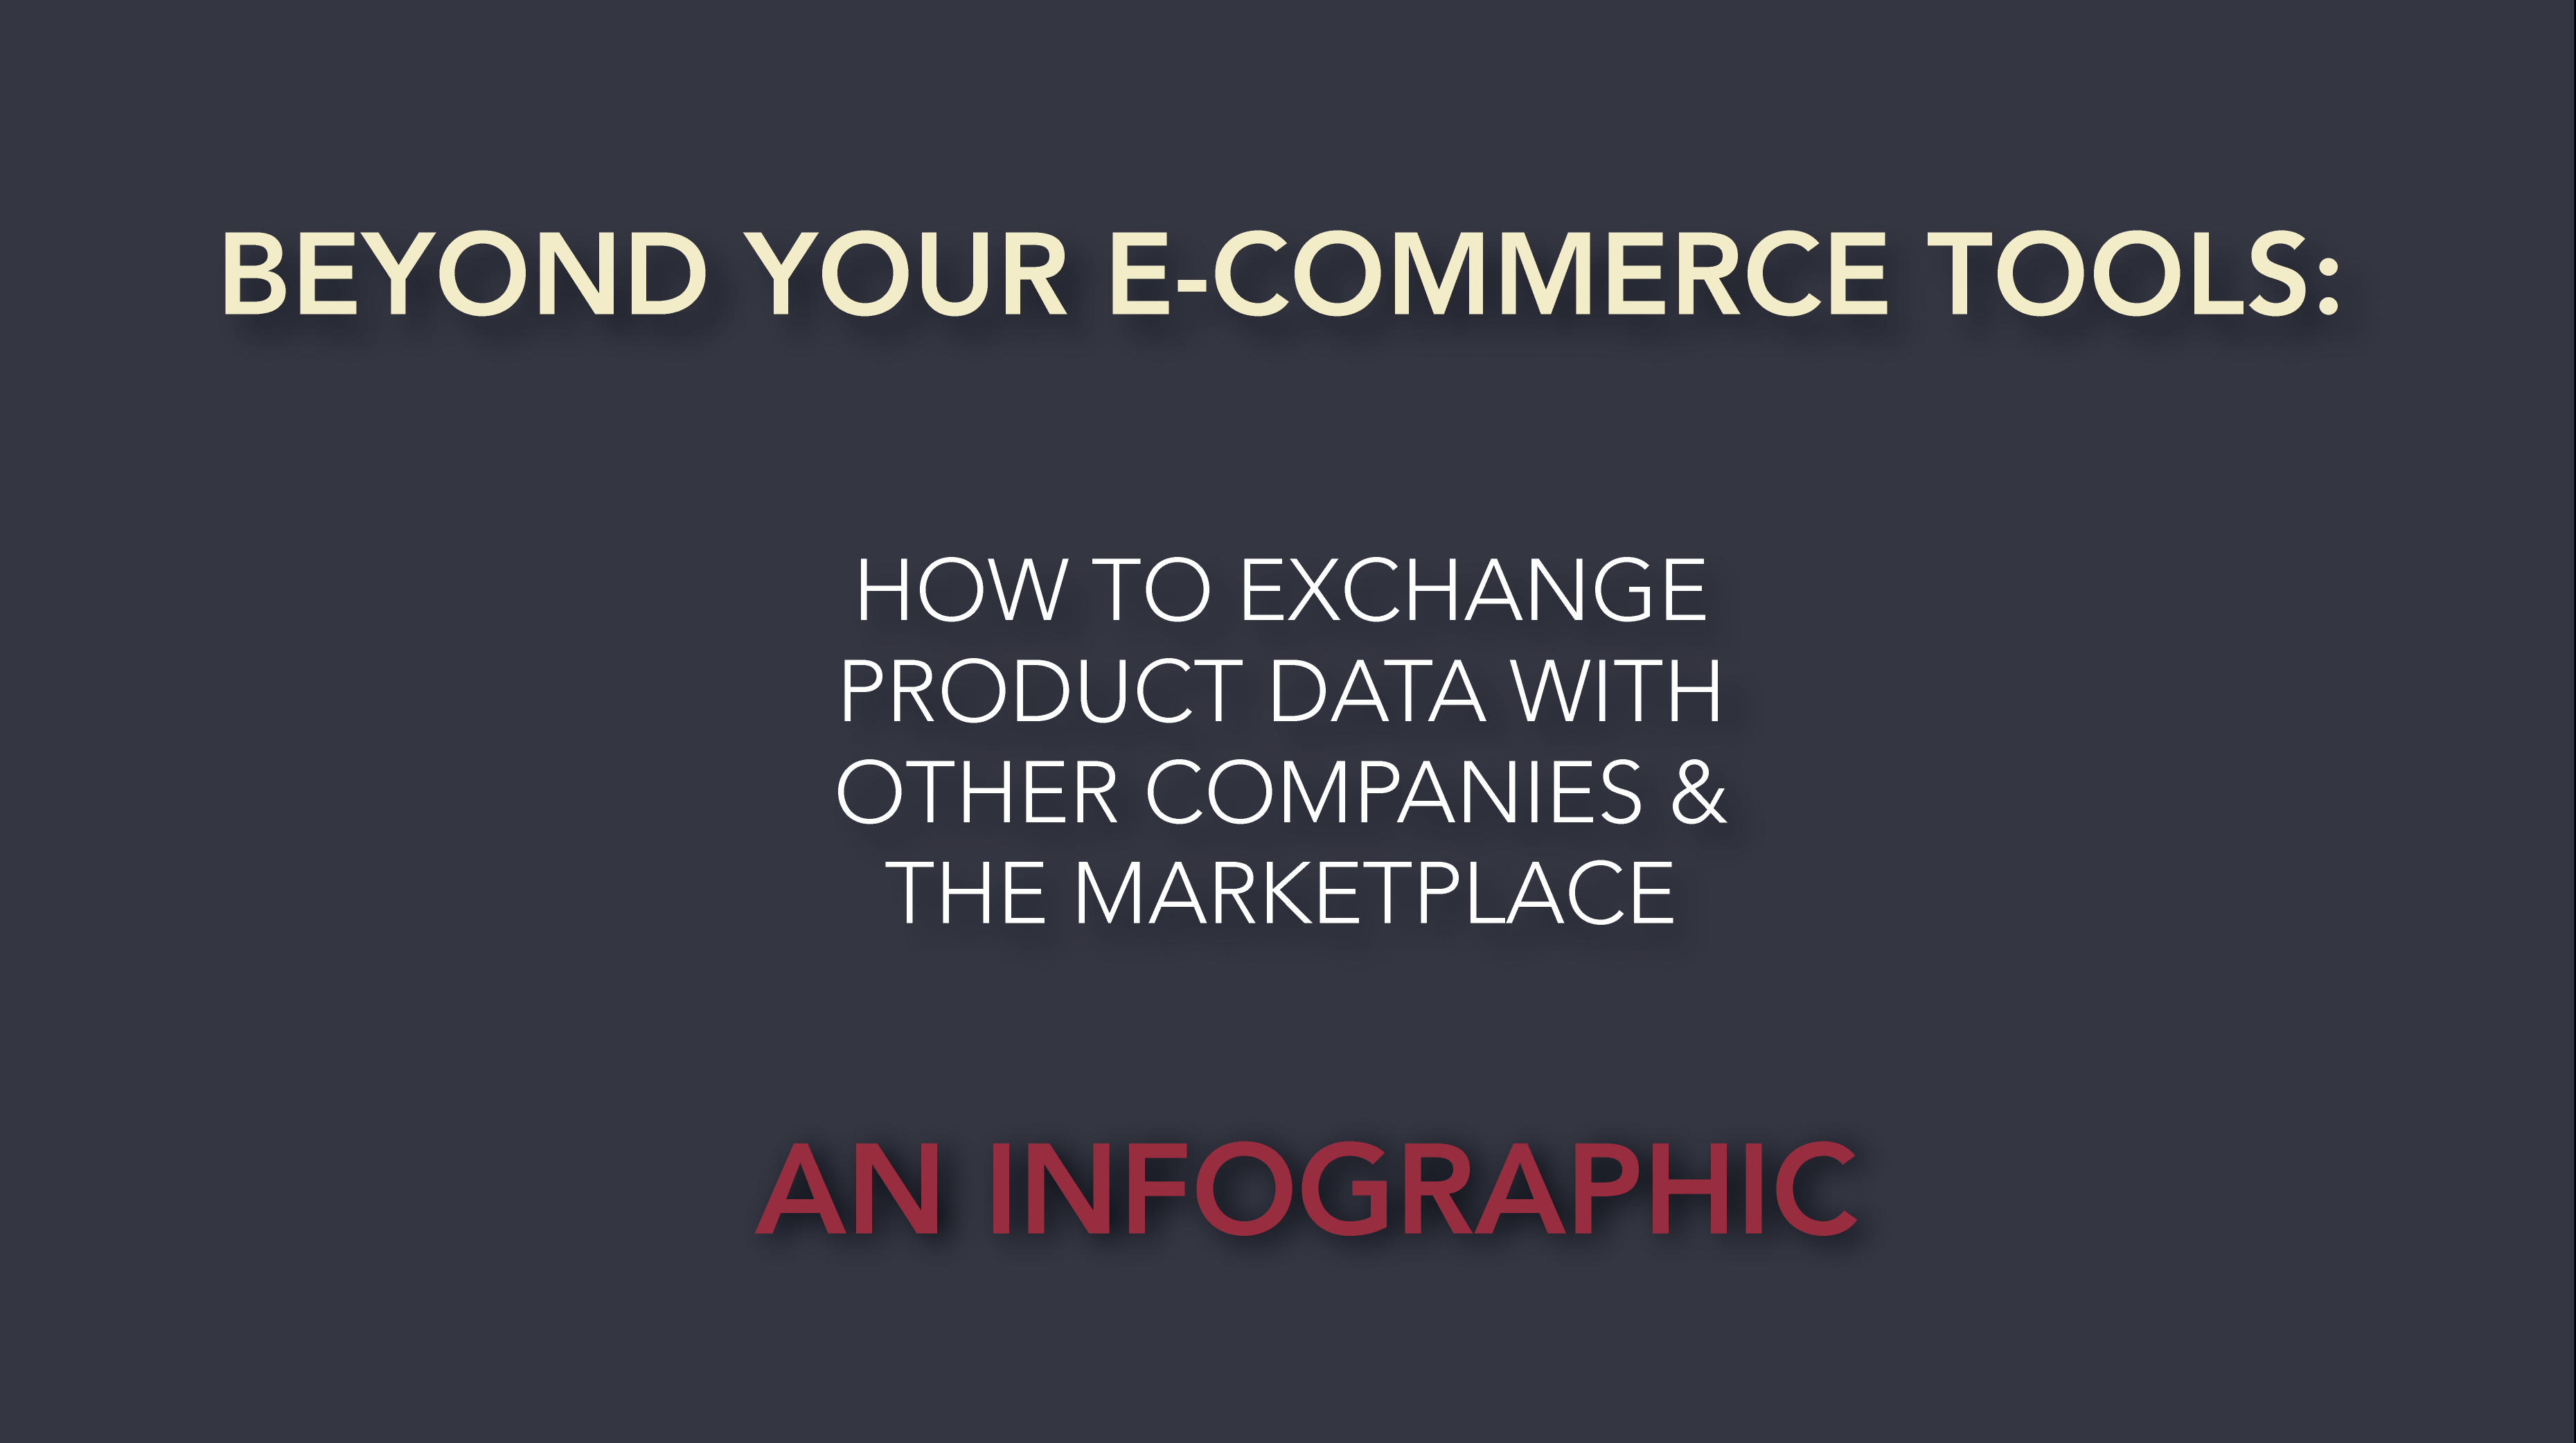 Hubspot_Product_Exchange_Infographic_Featured_Image-01